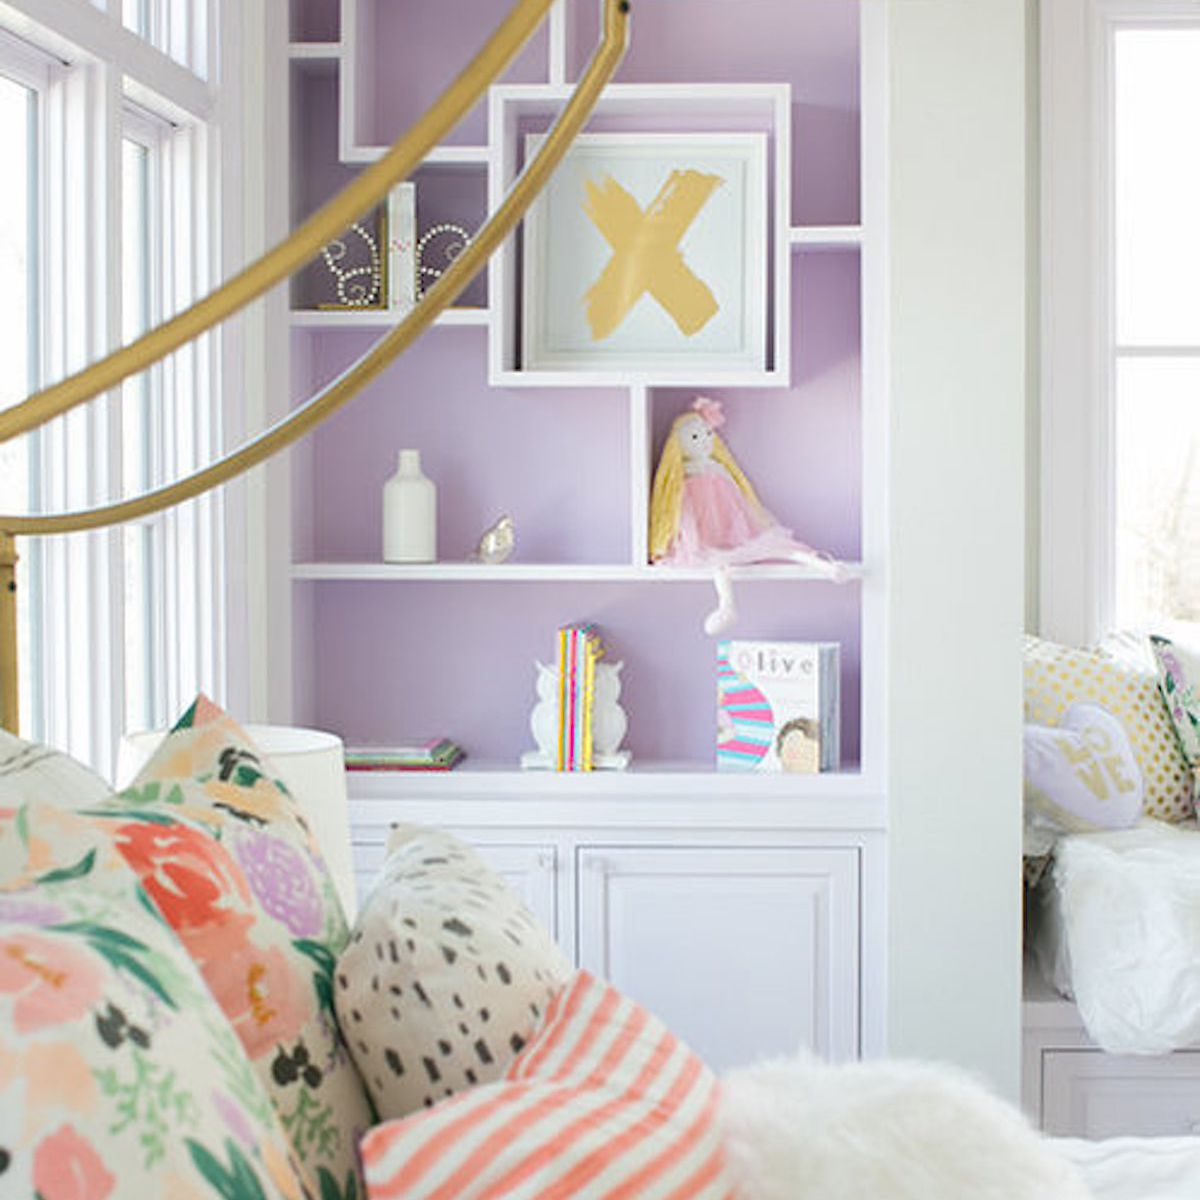 children's bedroom with purple and yellow accents